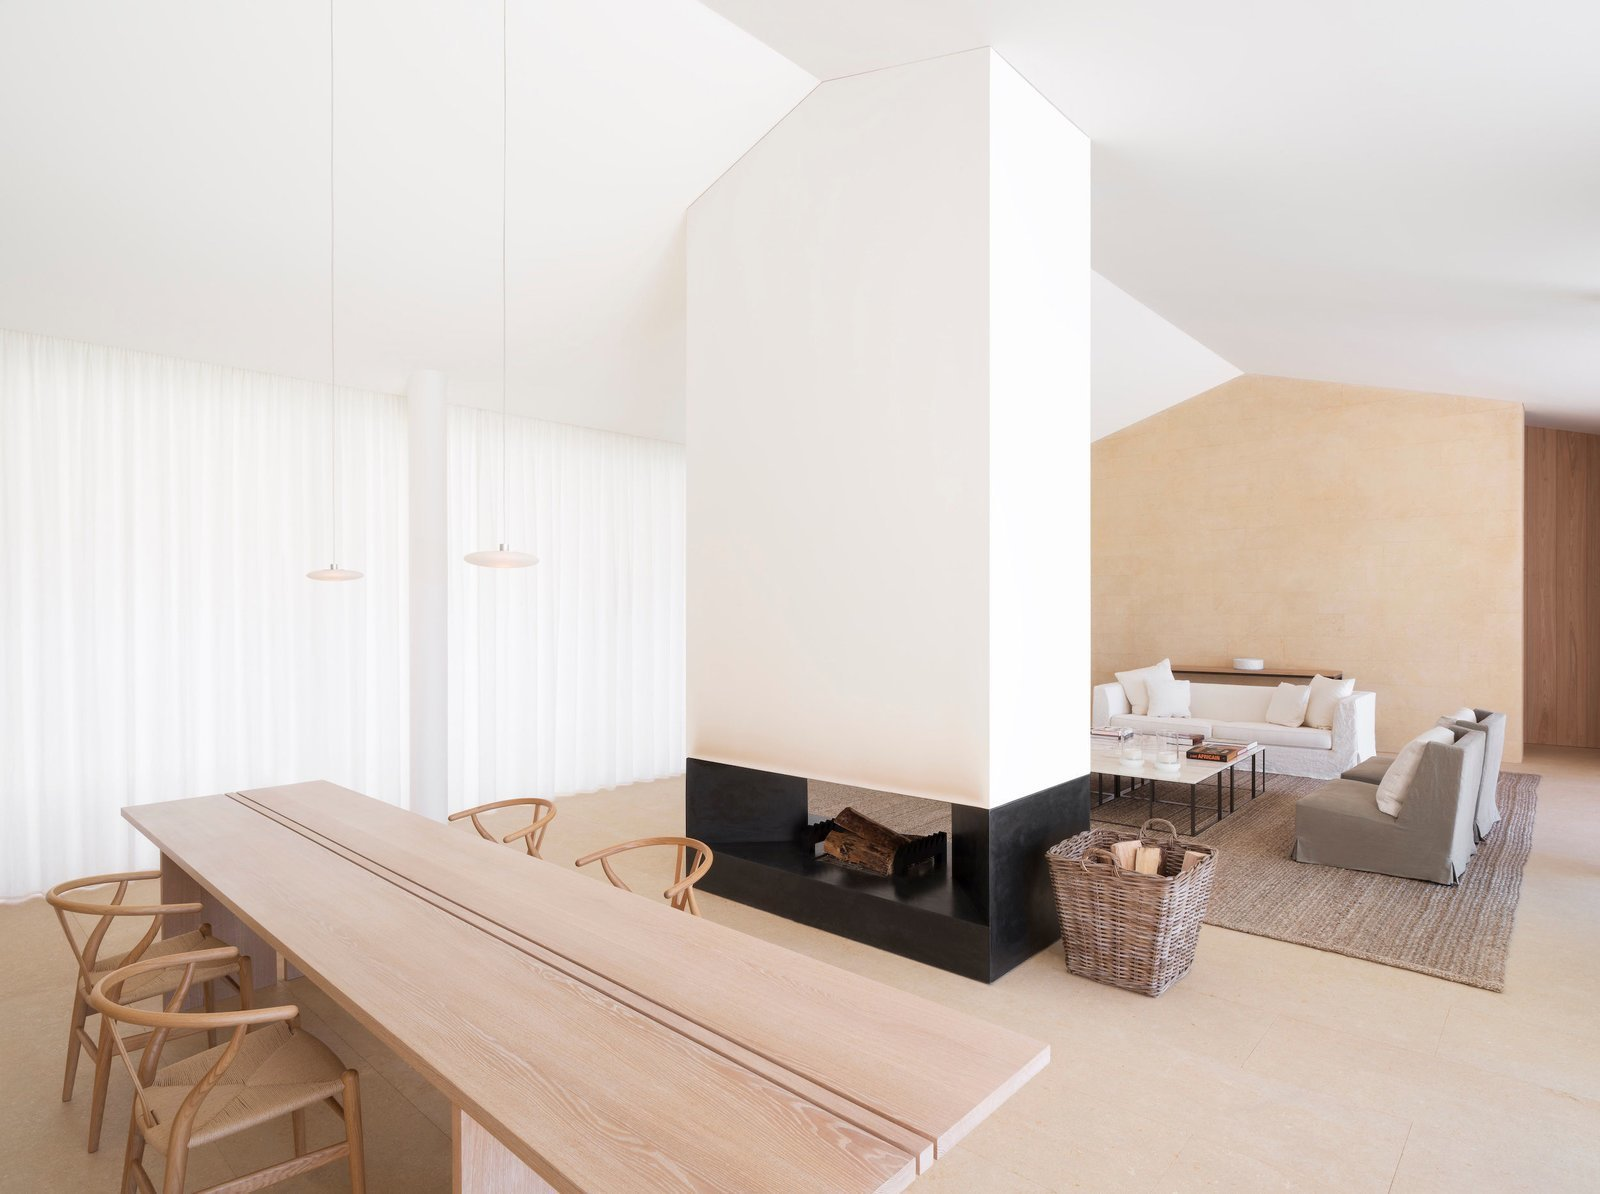 Designed by London architect John Pawson, this home in Saint Tropez has a freestanding fireplace framed by clean lines and bright white walls that acts as the heart a dynamic open-plan living room.